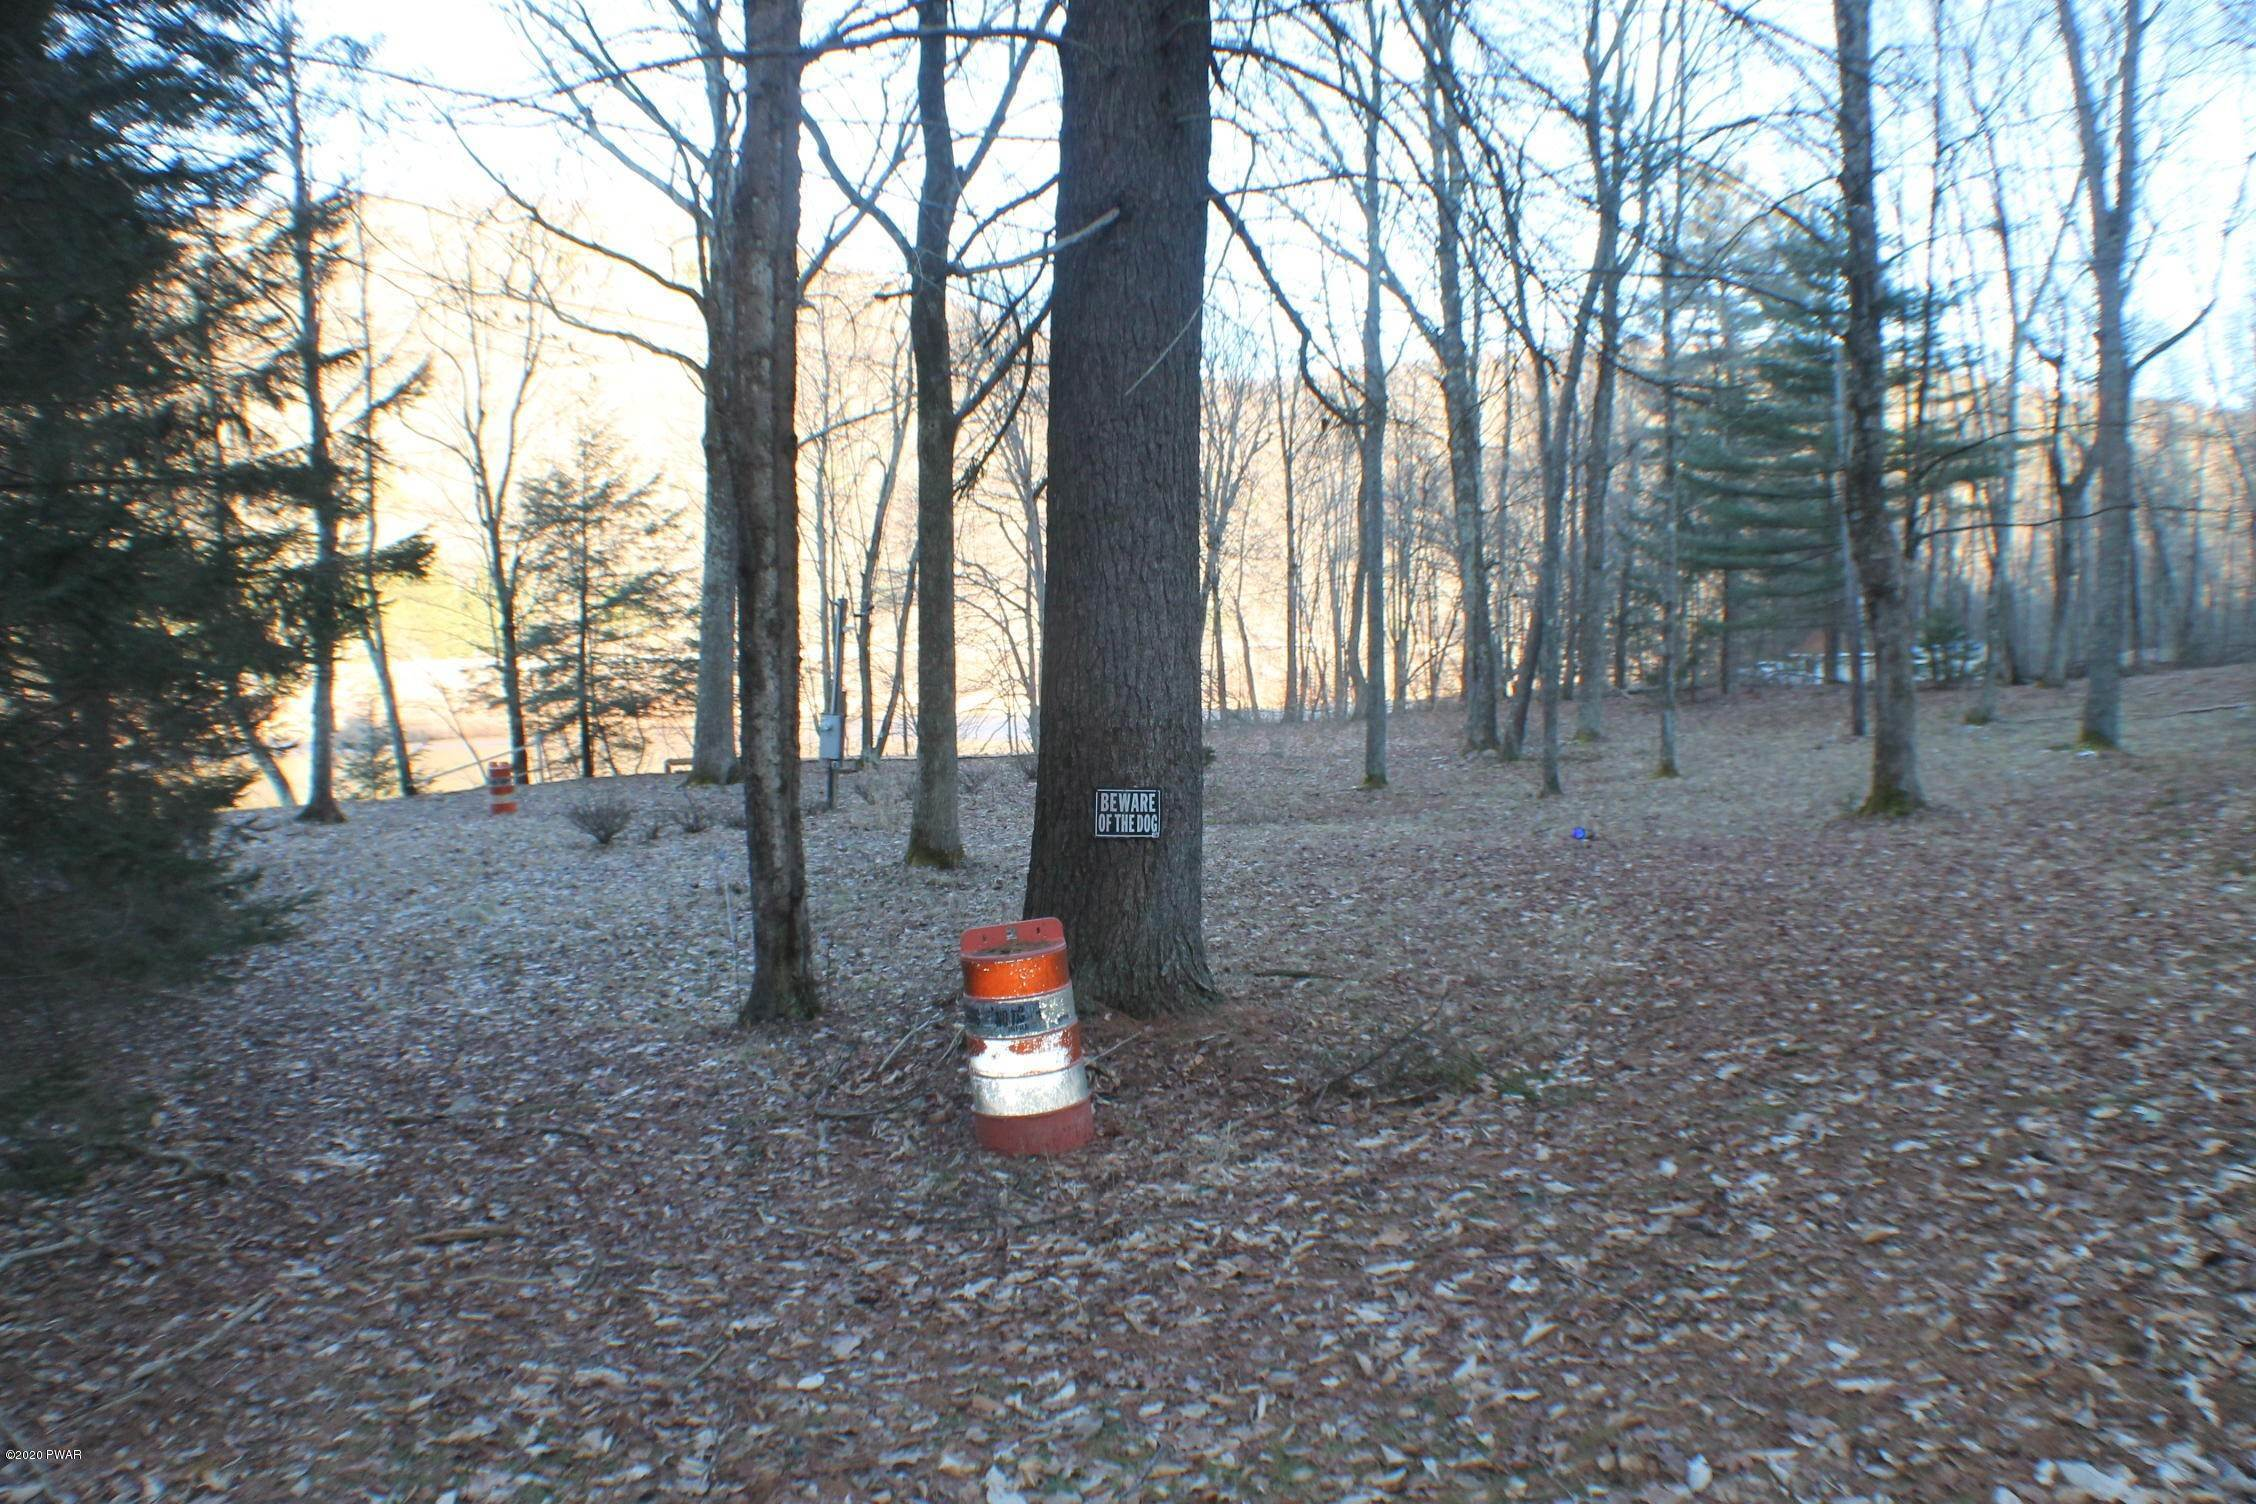 2. Land for Sale at 464 Penn York Rd Starlight, Pennsylvania 18461 United States